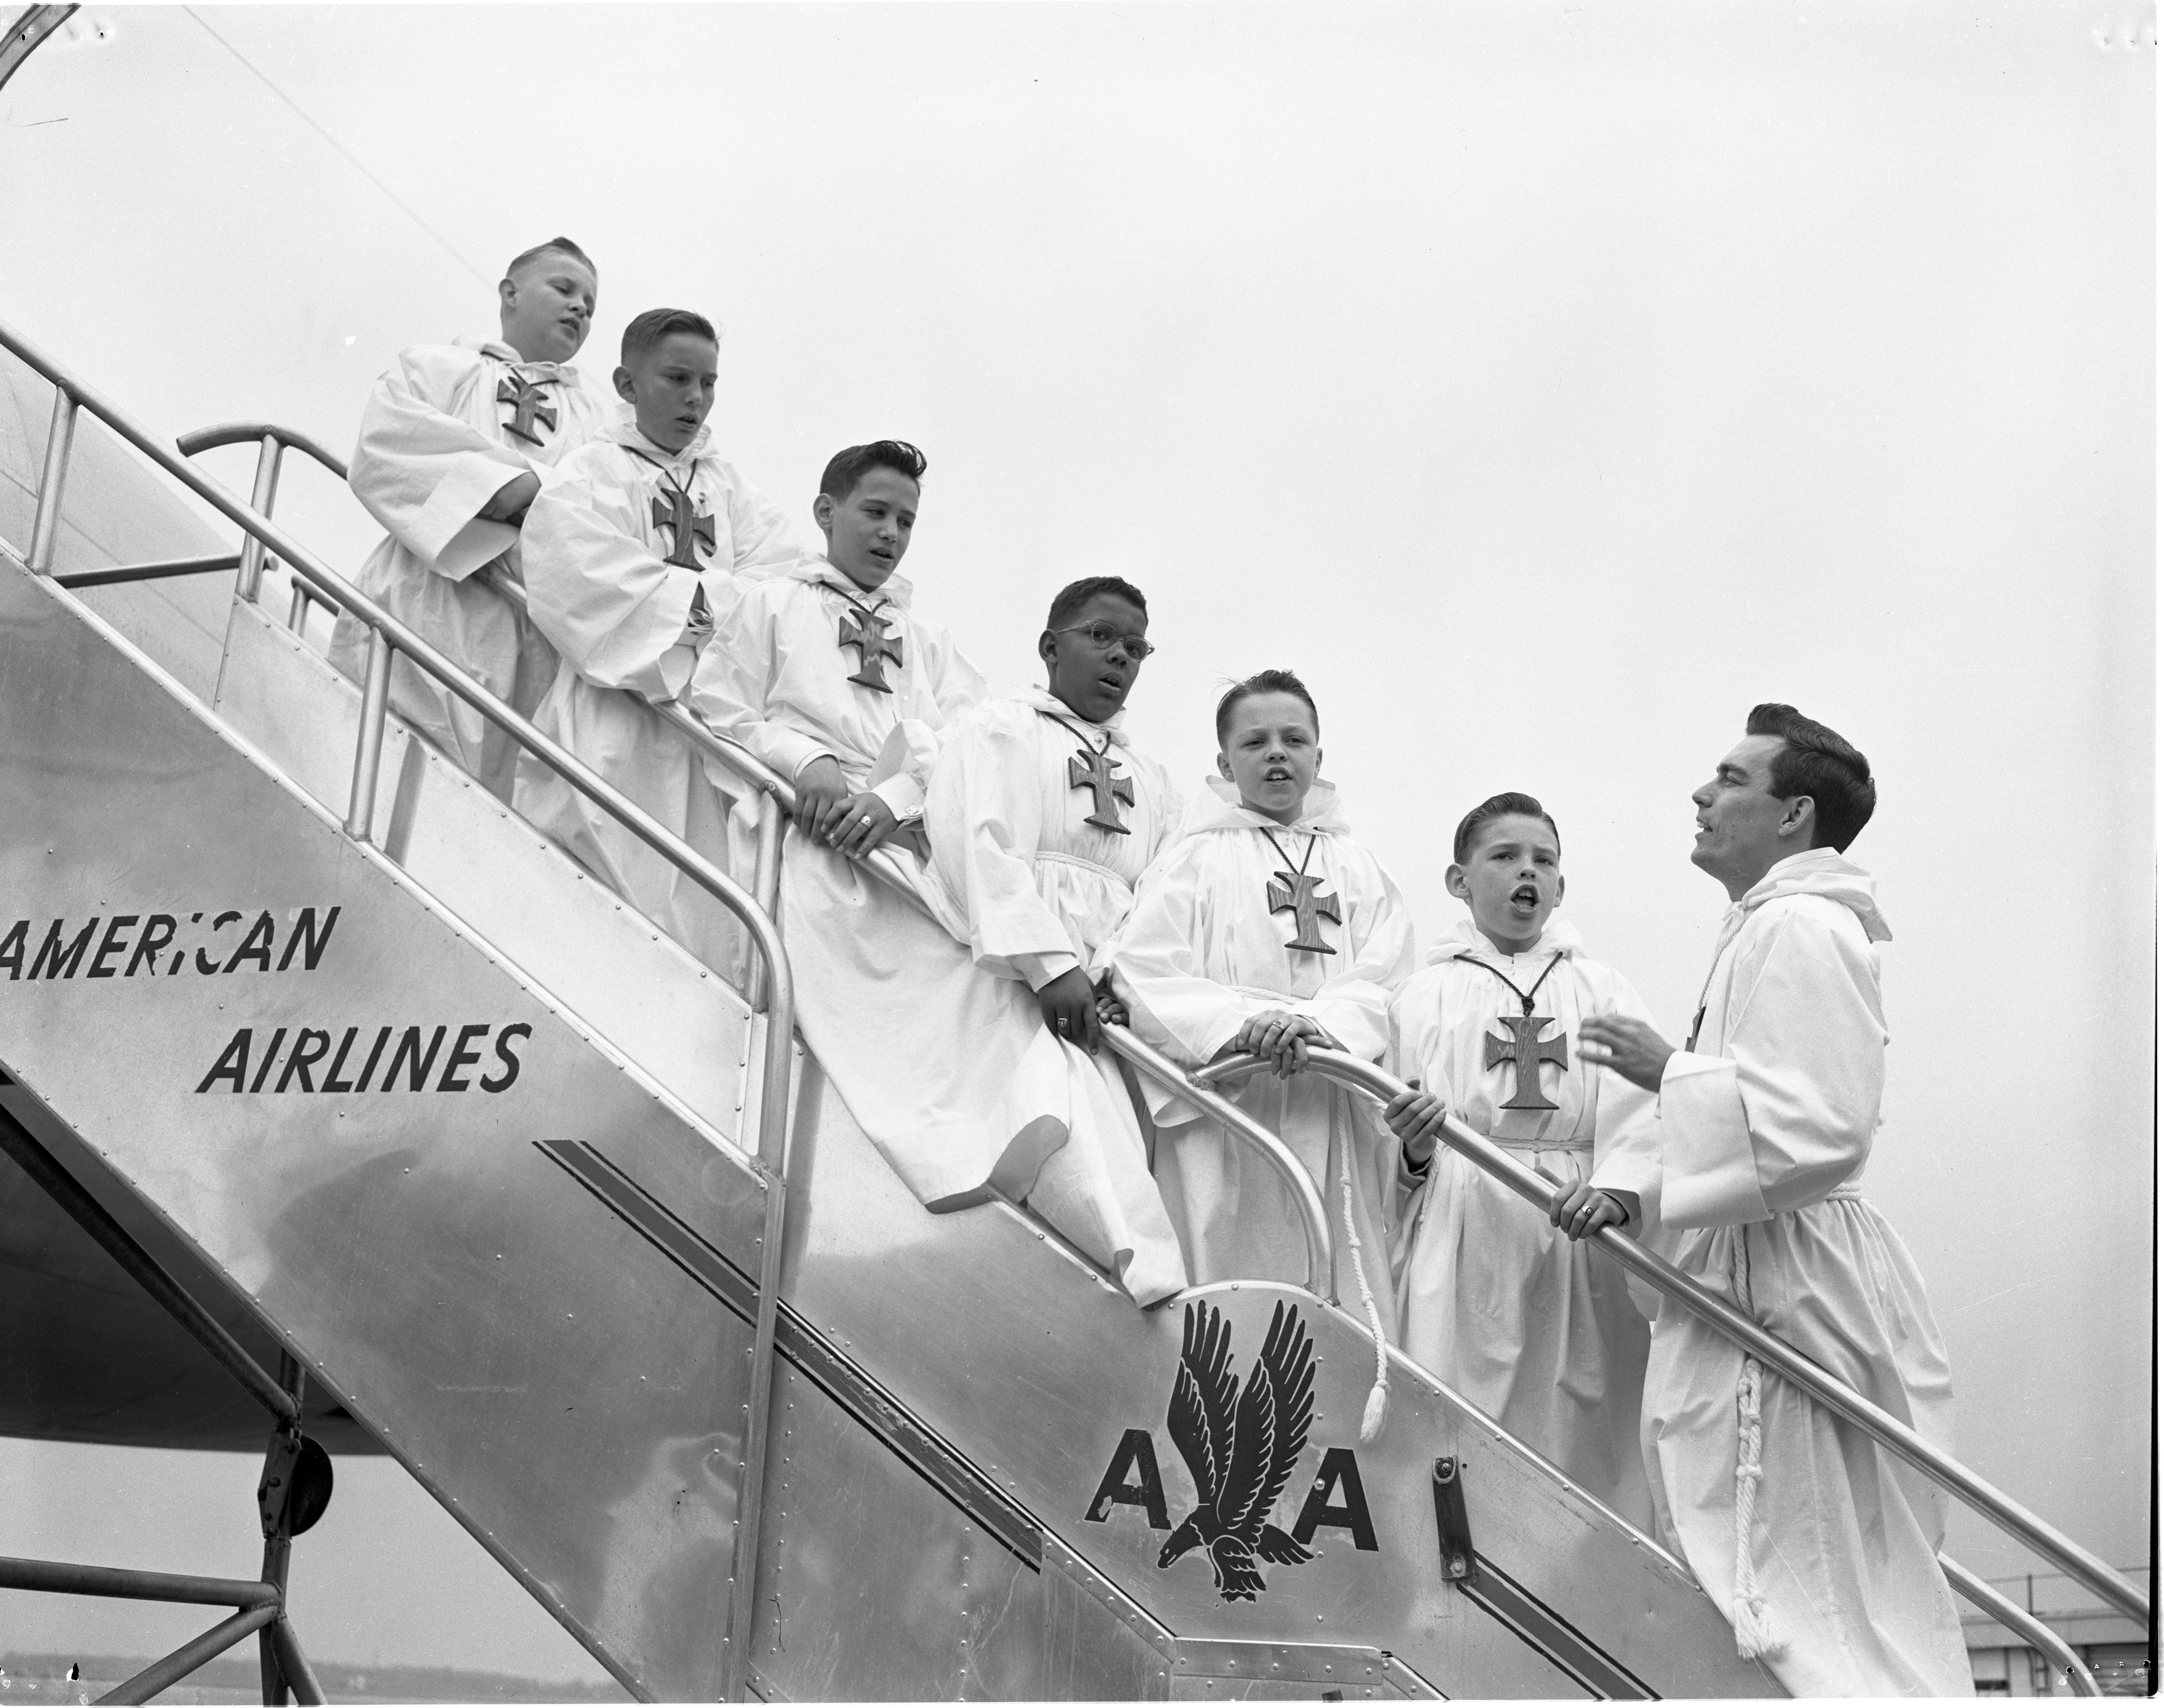 St. Thomas Catholic Church Choir Boys Board A Plane For Rome At Willow Run Airport - April 18, 1954 image